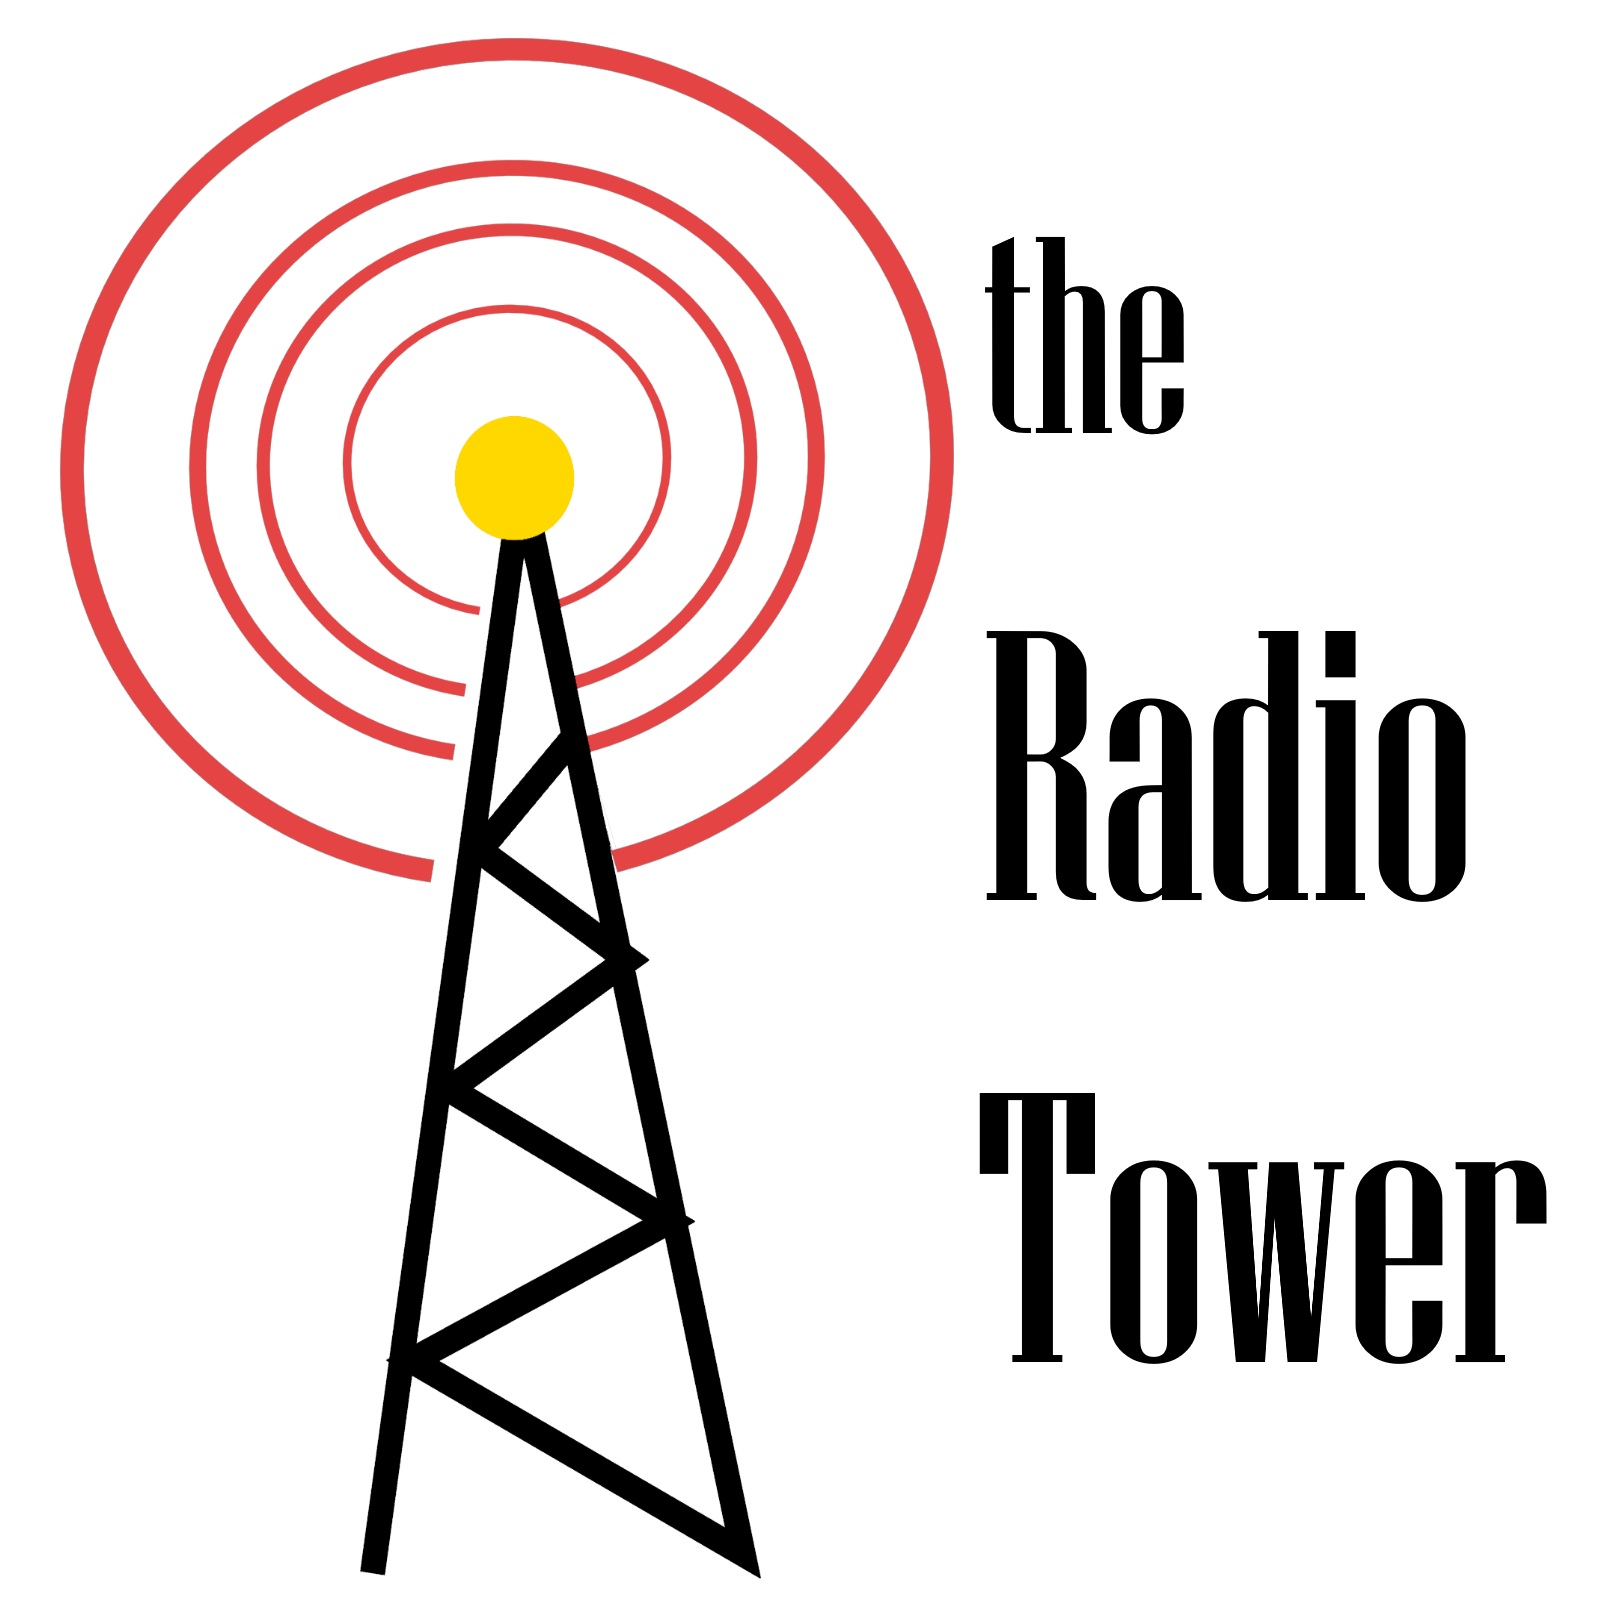 Radio Tower14: Jack Beebe Behind the Scenes show art